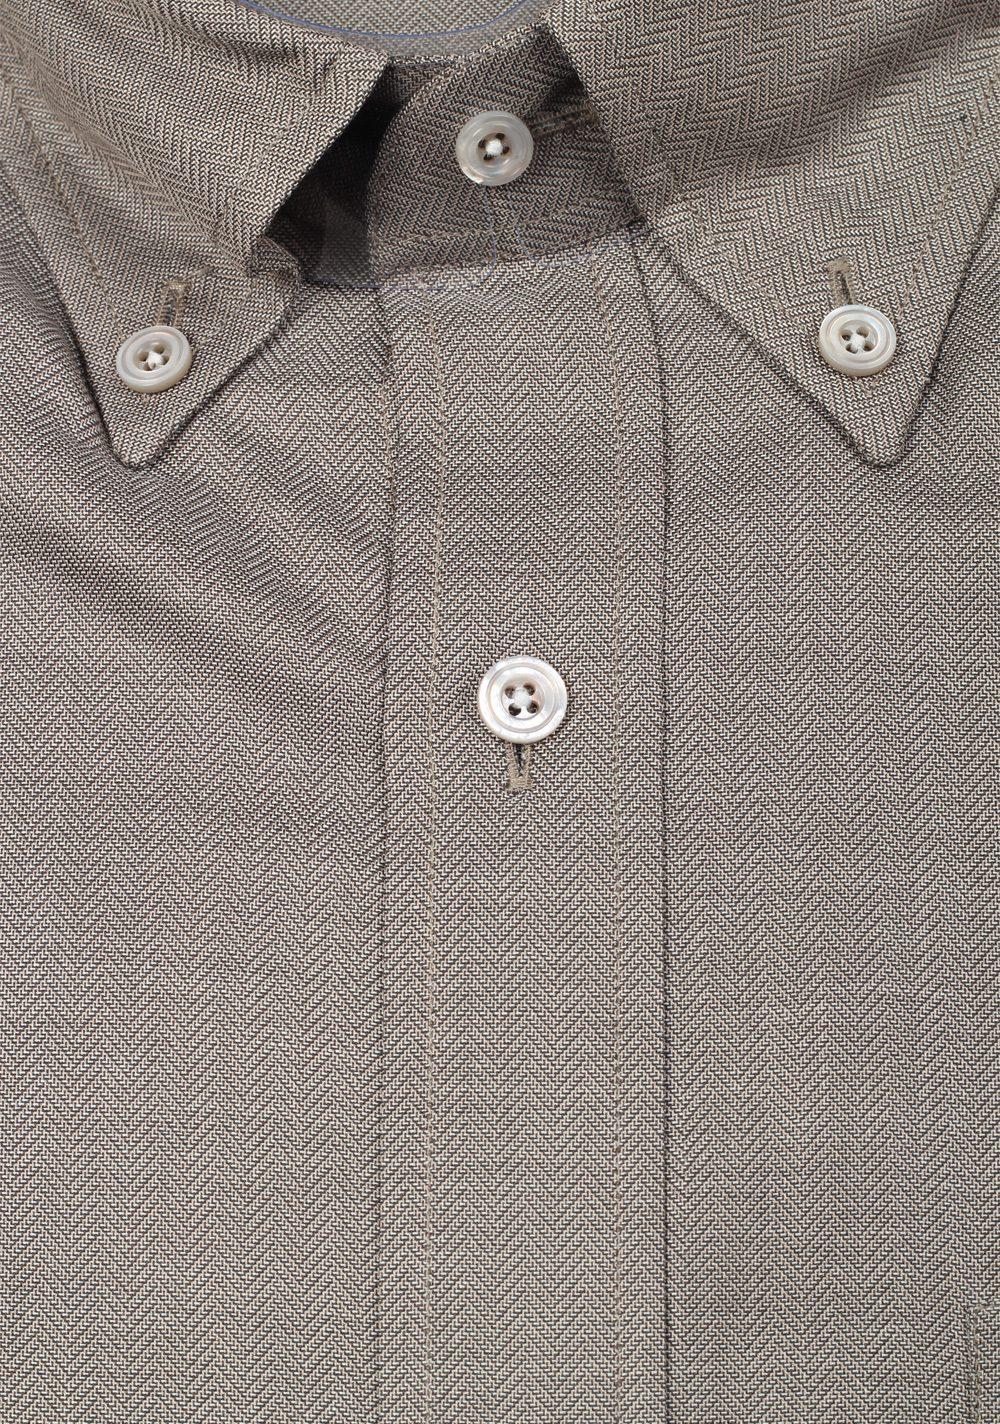 TOM FORD Solid Gray Button Down Dress Shirt Size 40 / 15,75 U.S. | Costume Limité